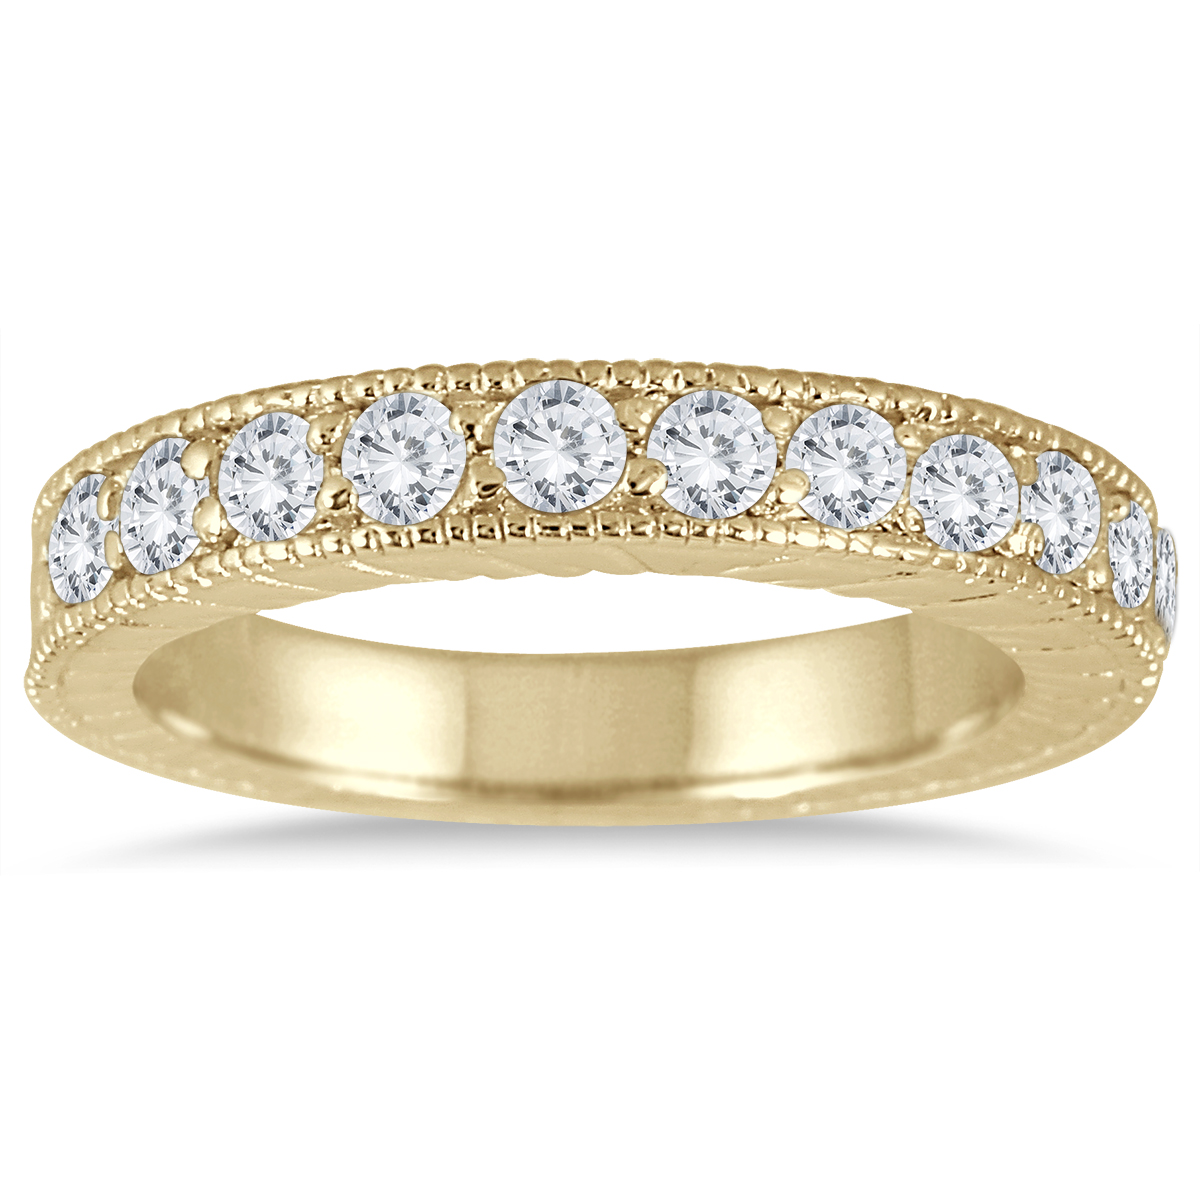 1/2 Carat TW Antique Styled Engraved Diamond Band in 10K Yellow Gold